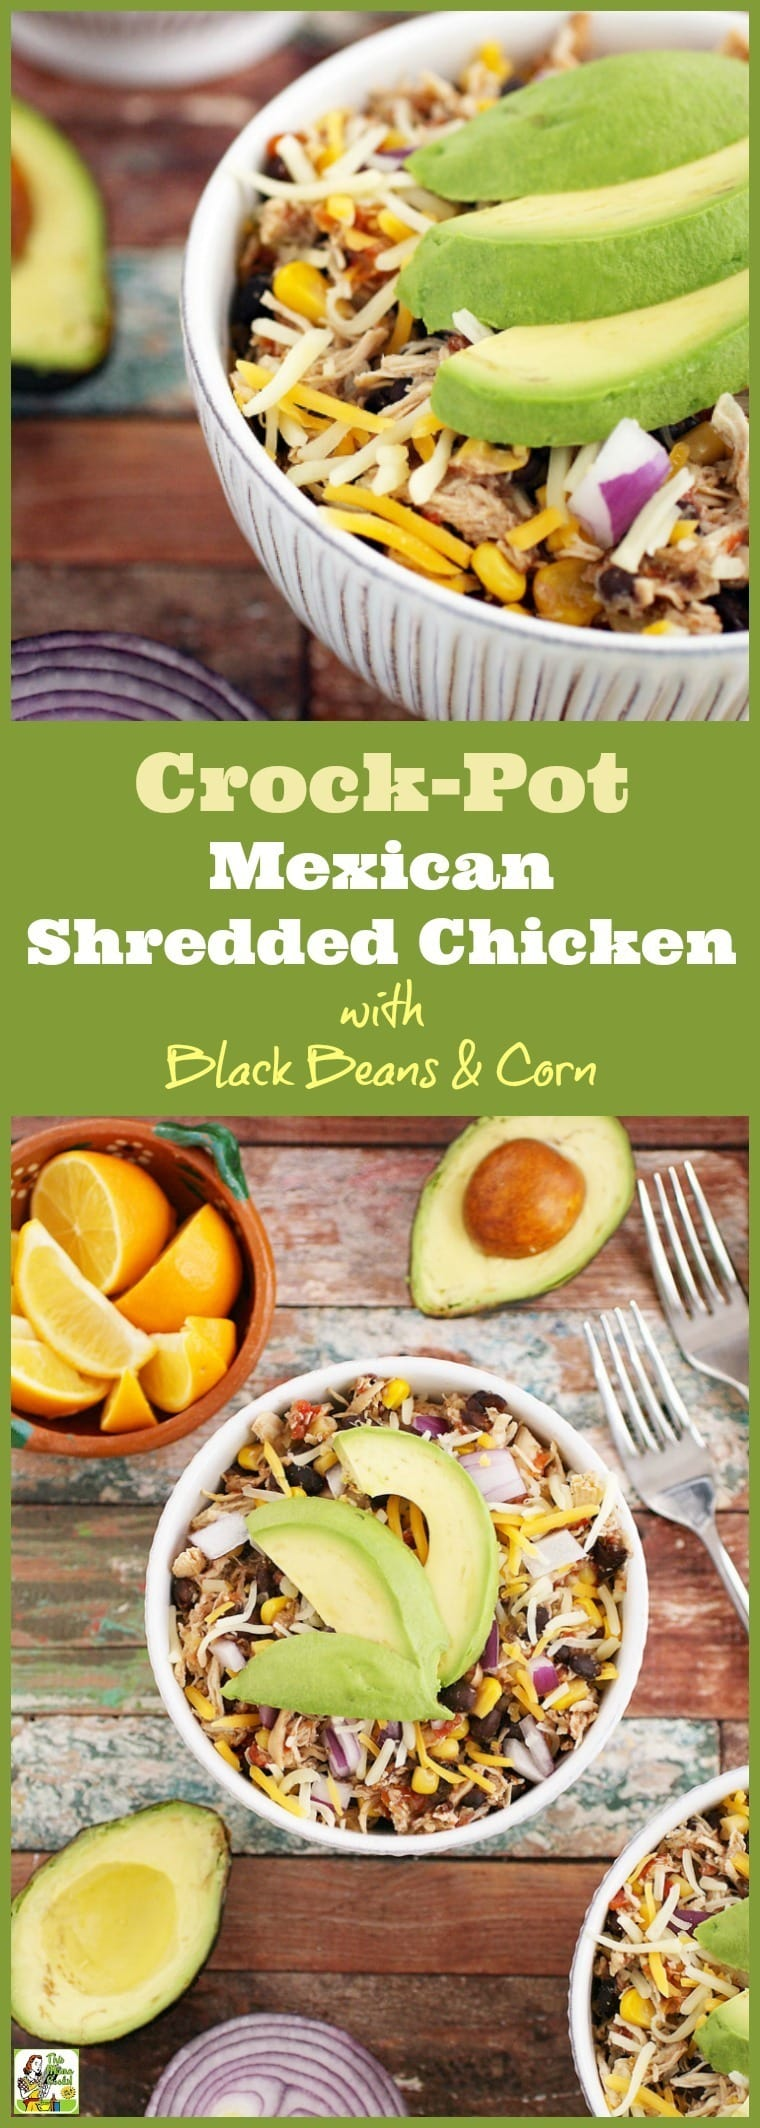 This Crock-Pot Mexican Shredded Chicken with Black Beans & Corn recipe is perfect for busy weeknights. This slow cooker shredded chicken taco recipe or shredded chicken burrito recipe makes great burrito bowls for parties, too! #recipes #easy #recipeoftheday #glutenfree #easyrecipe #easyrecipes #glutenfreerecipes #dinner #easydinner #dinnerrecipes #dinnerideas #chicken #chickenfoodrecipes #chickenrecipes #slowcooker #slowcookerrecipes #crockpot #crockpotrecipes